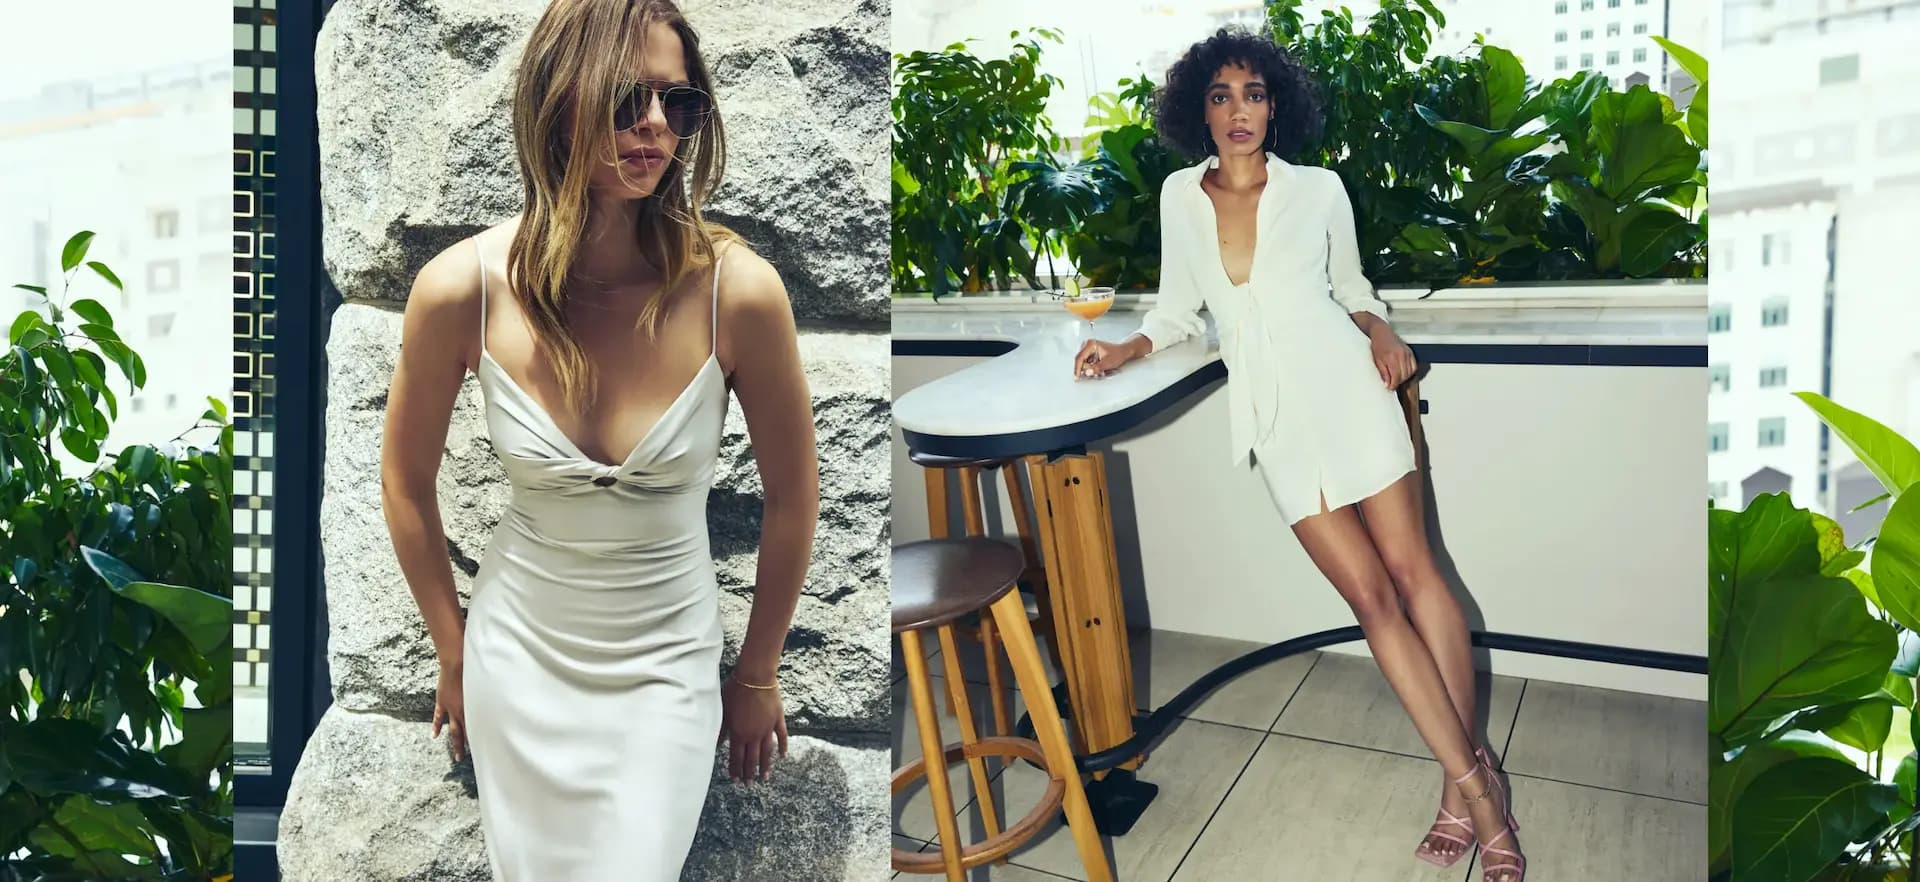 A model wears a white bodycon satin dress and sunglasses and another wears a white tie-front shirtdress with long sleeves.